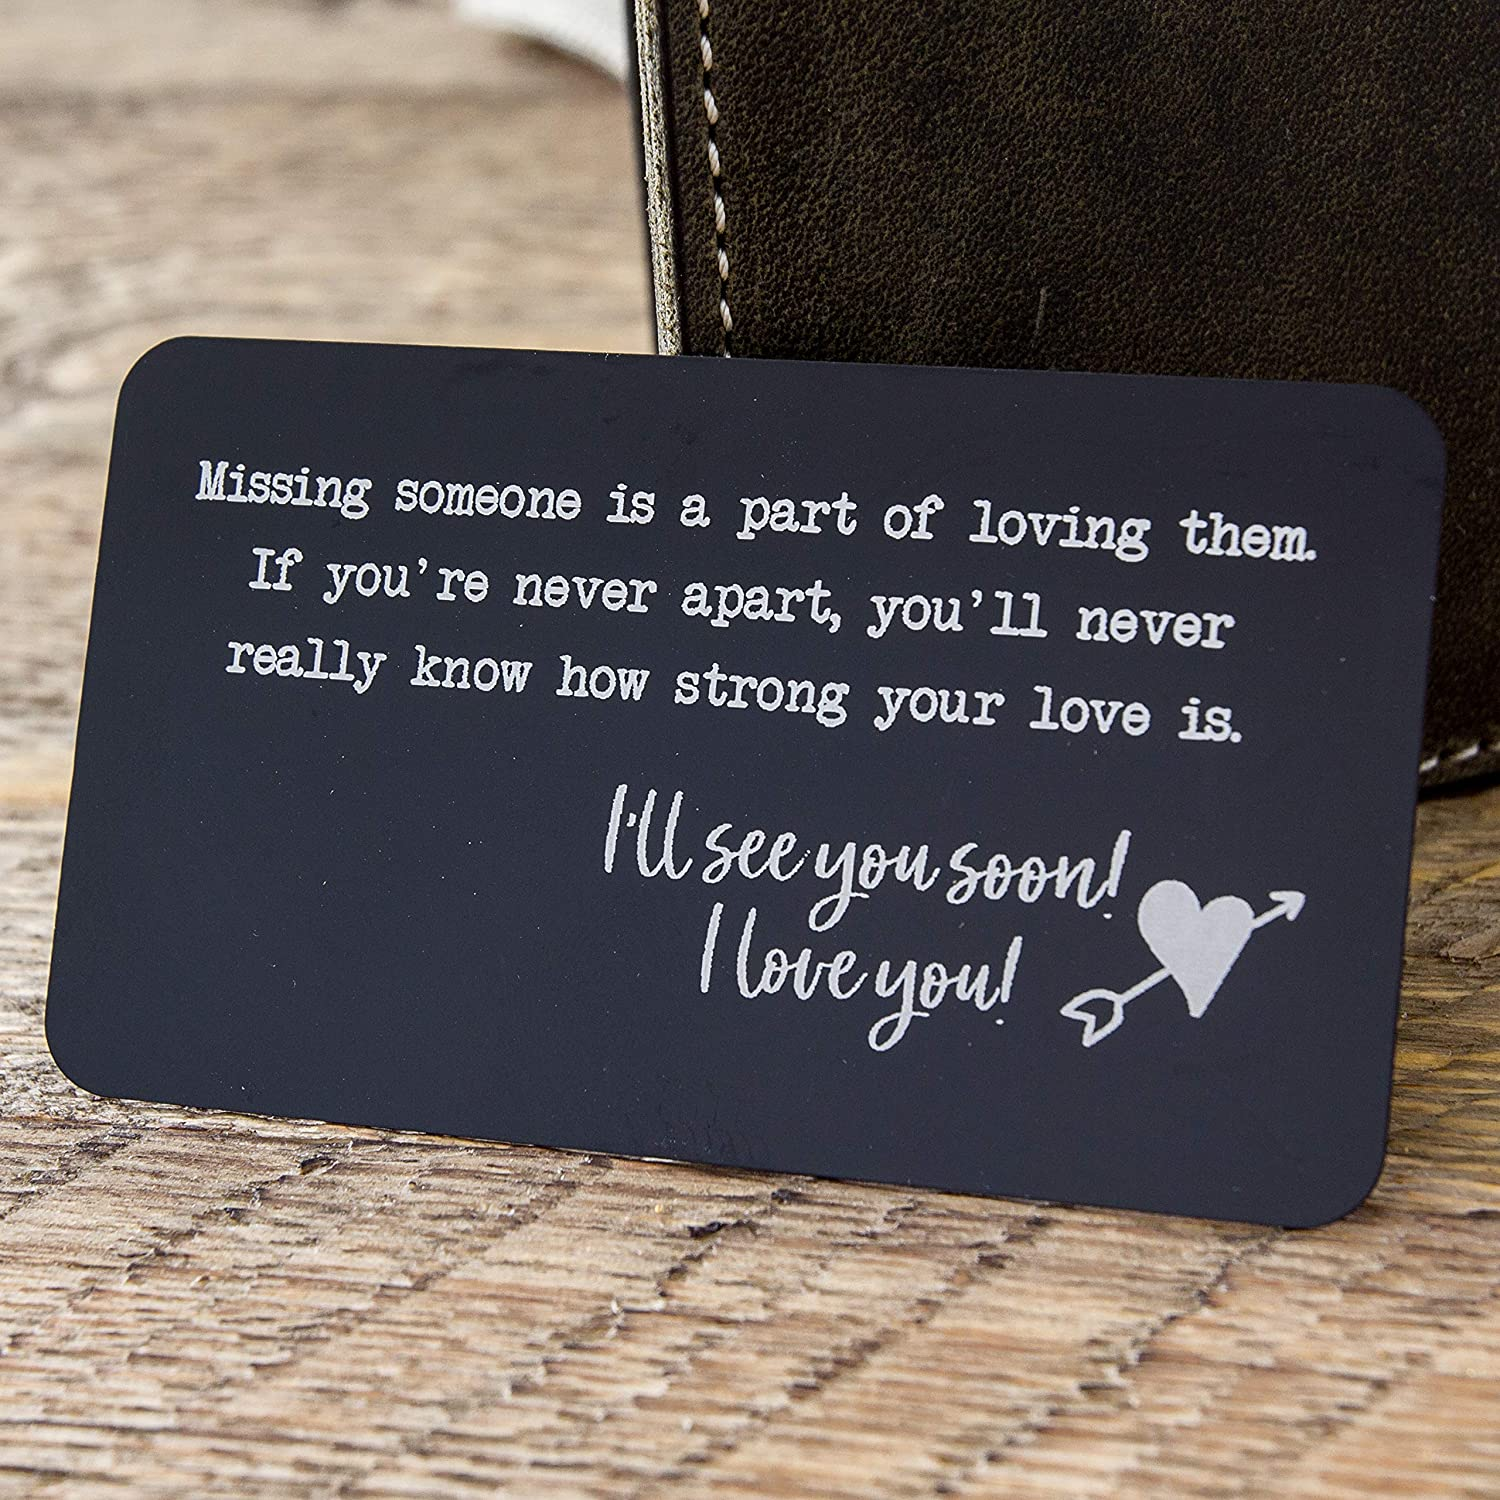 Metal Wallet Card Insert with engraved quote for missing someone - Long  Distance Relationship Gift for Boyfriend or Friends - Military Deployment  Gift